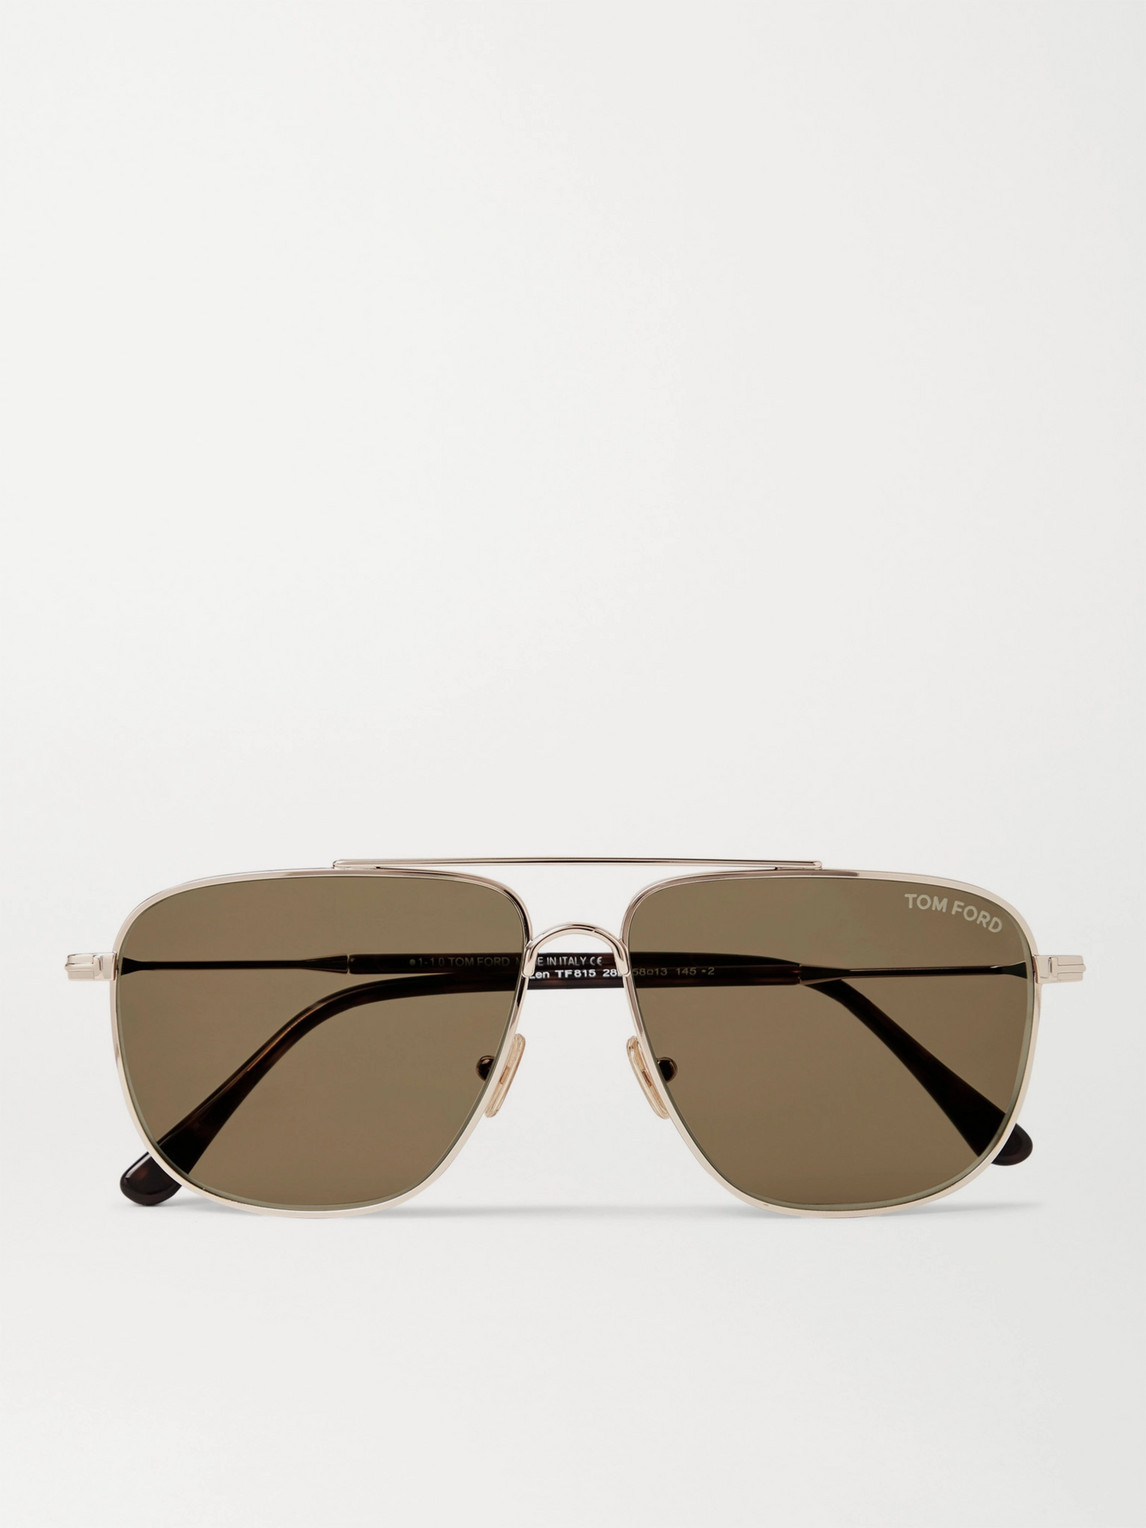 Tom Ford Aviator-style Gold-tone And Tortoiseshell Acetate Sunglasses